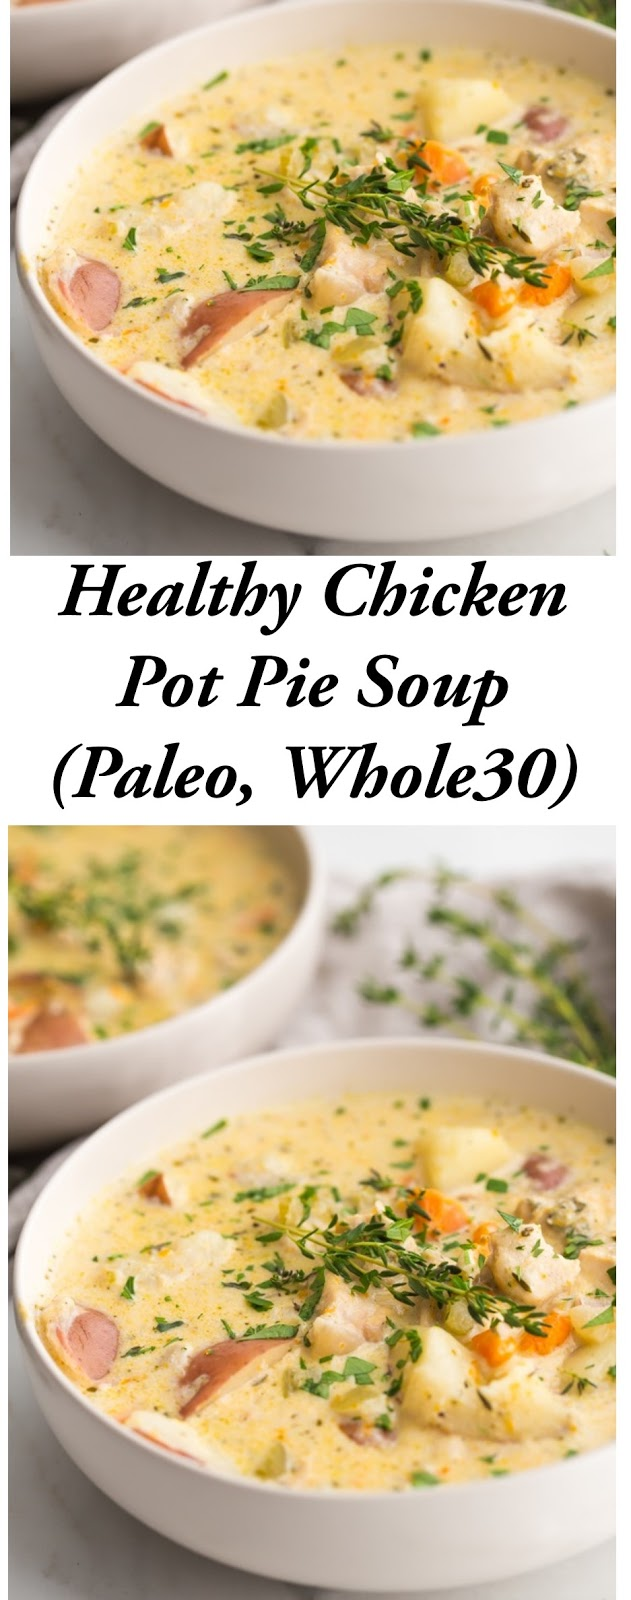 Instant Pot Healthy Chicken Pot Pie Soup